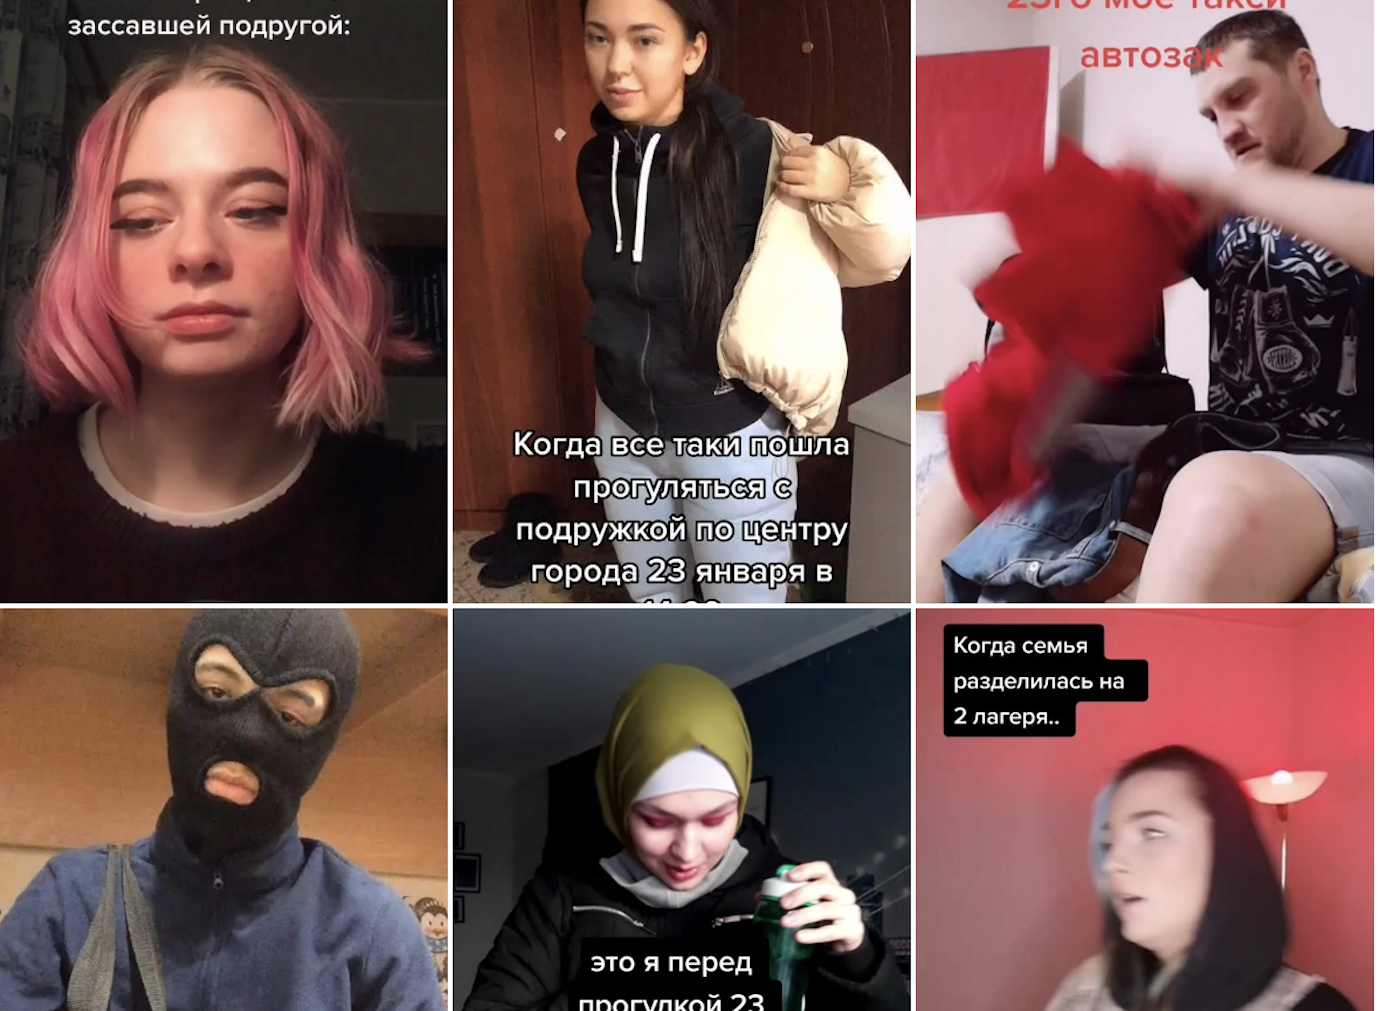 Tik Tok, Instagram, Youtube and VKontake delete Russians' calls to protest